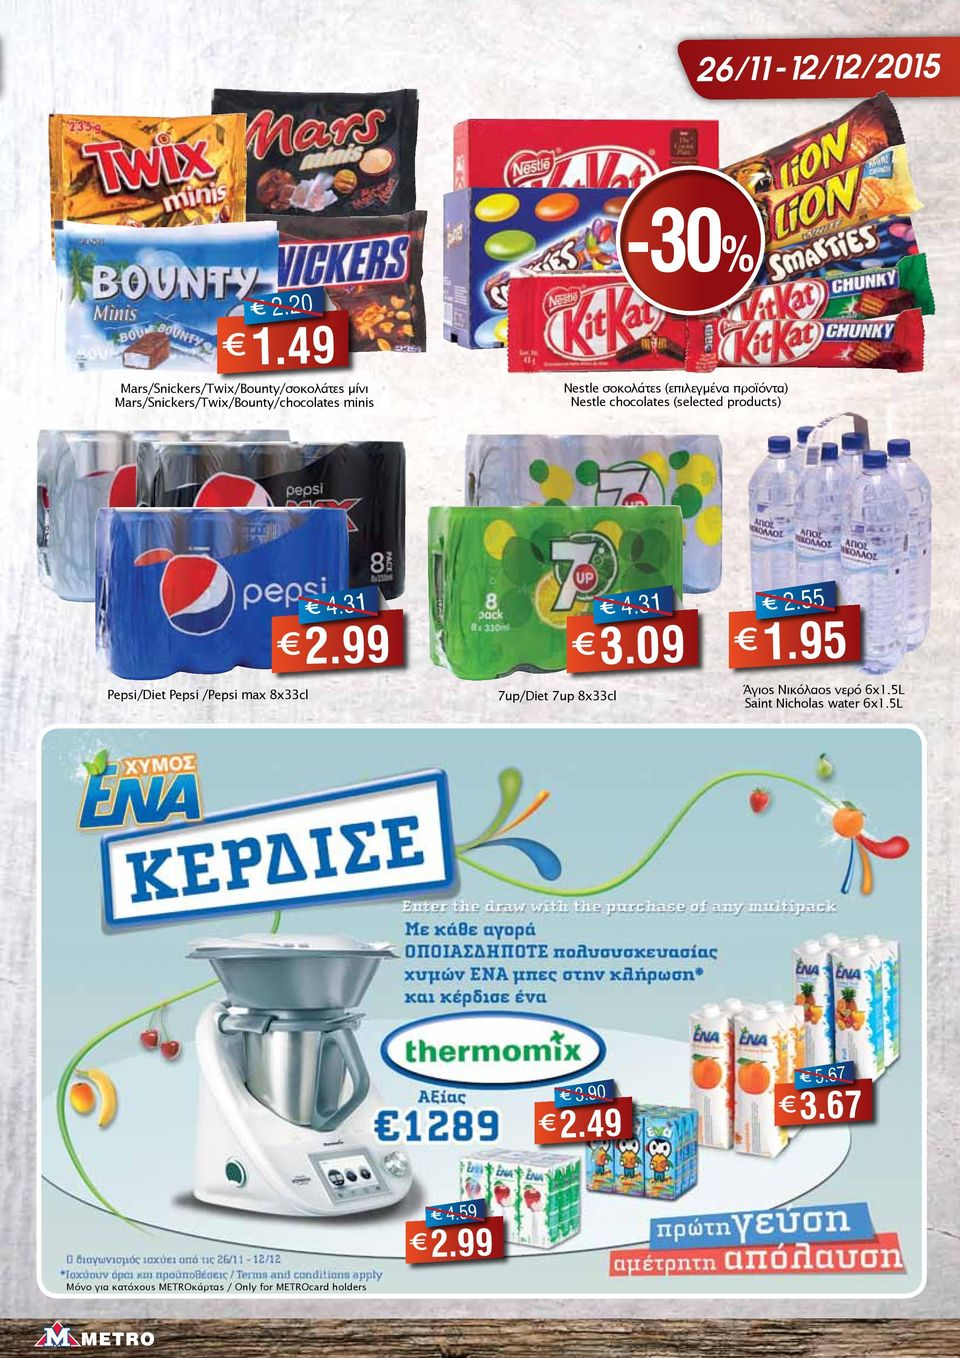 (επιλεγμένα προϊόντα) Nestle chocolates (selected products) Pepsi/Diet Pepsi /Pepsi max 8x33cl 4.31 2.